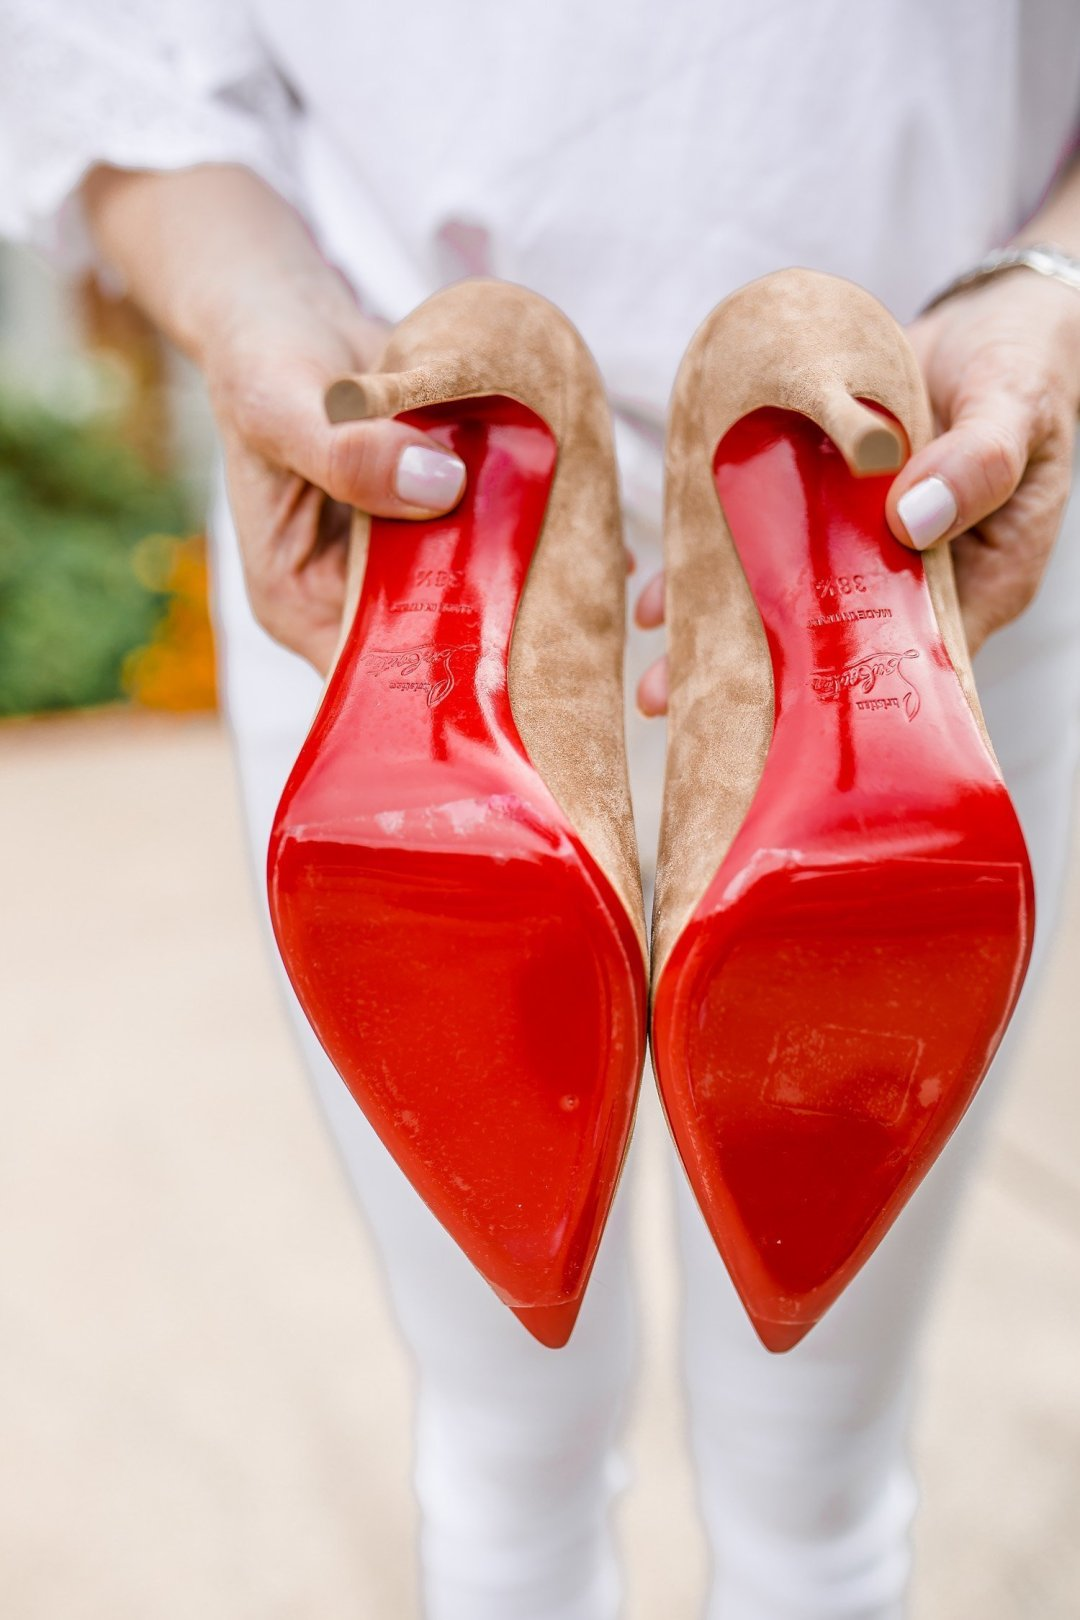 How to protect your Christian Louboutin shoes